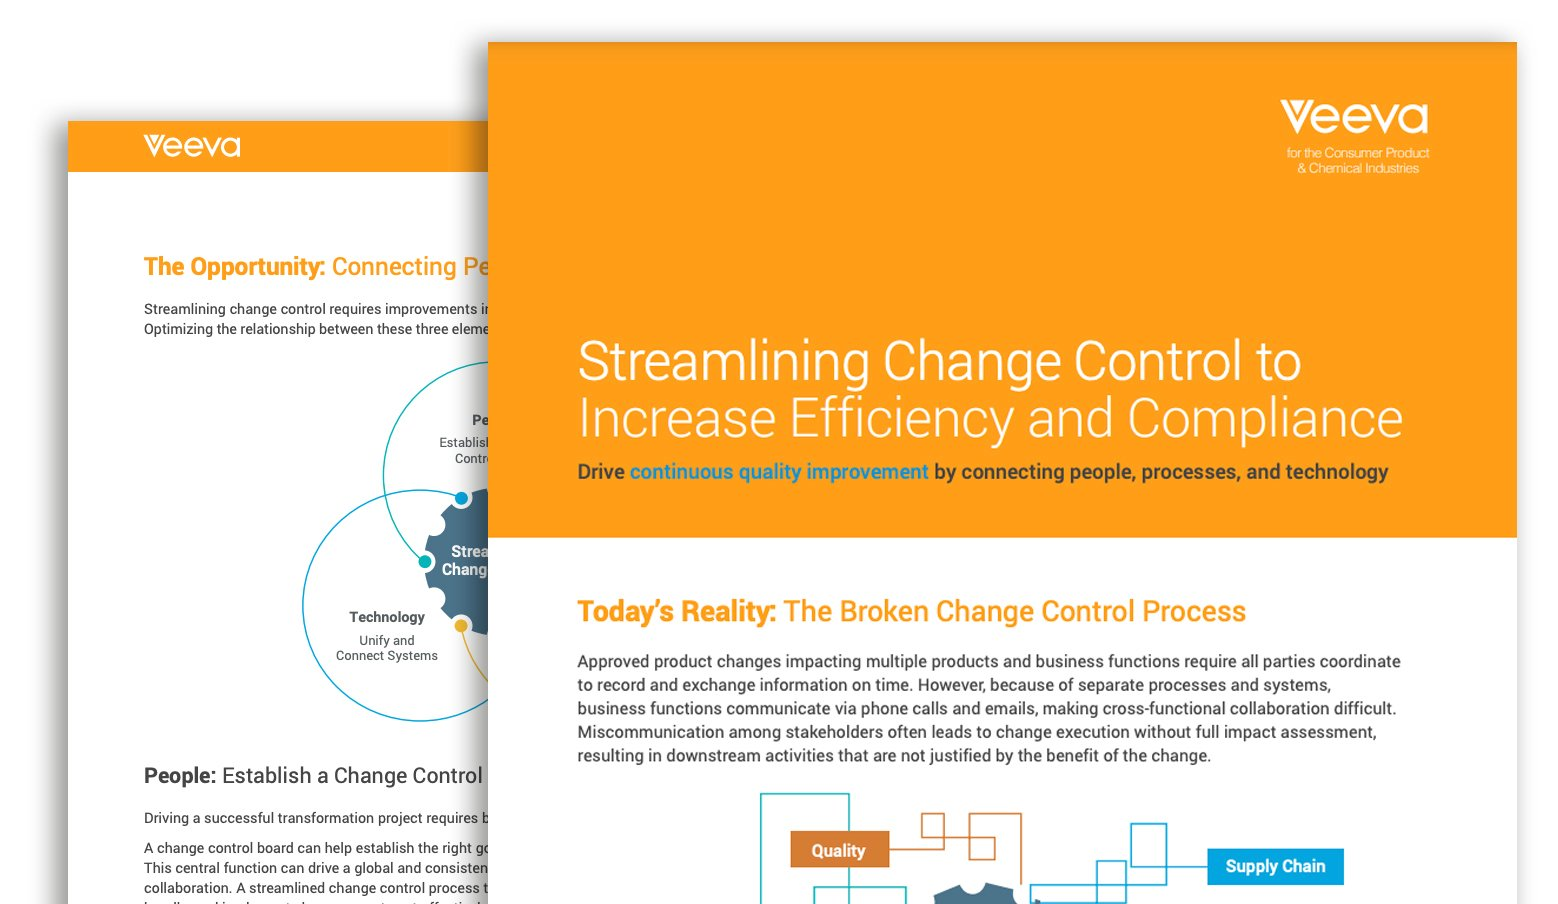 Streamlining Change Control to Increase Efficiency and Compliance